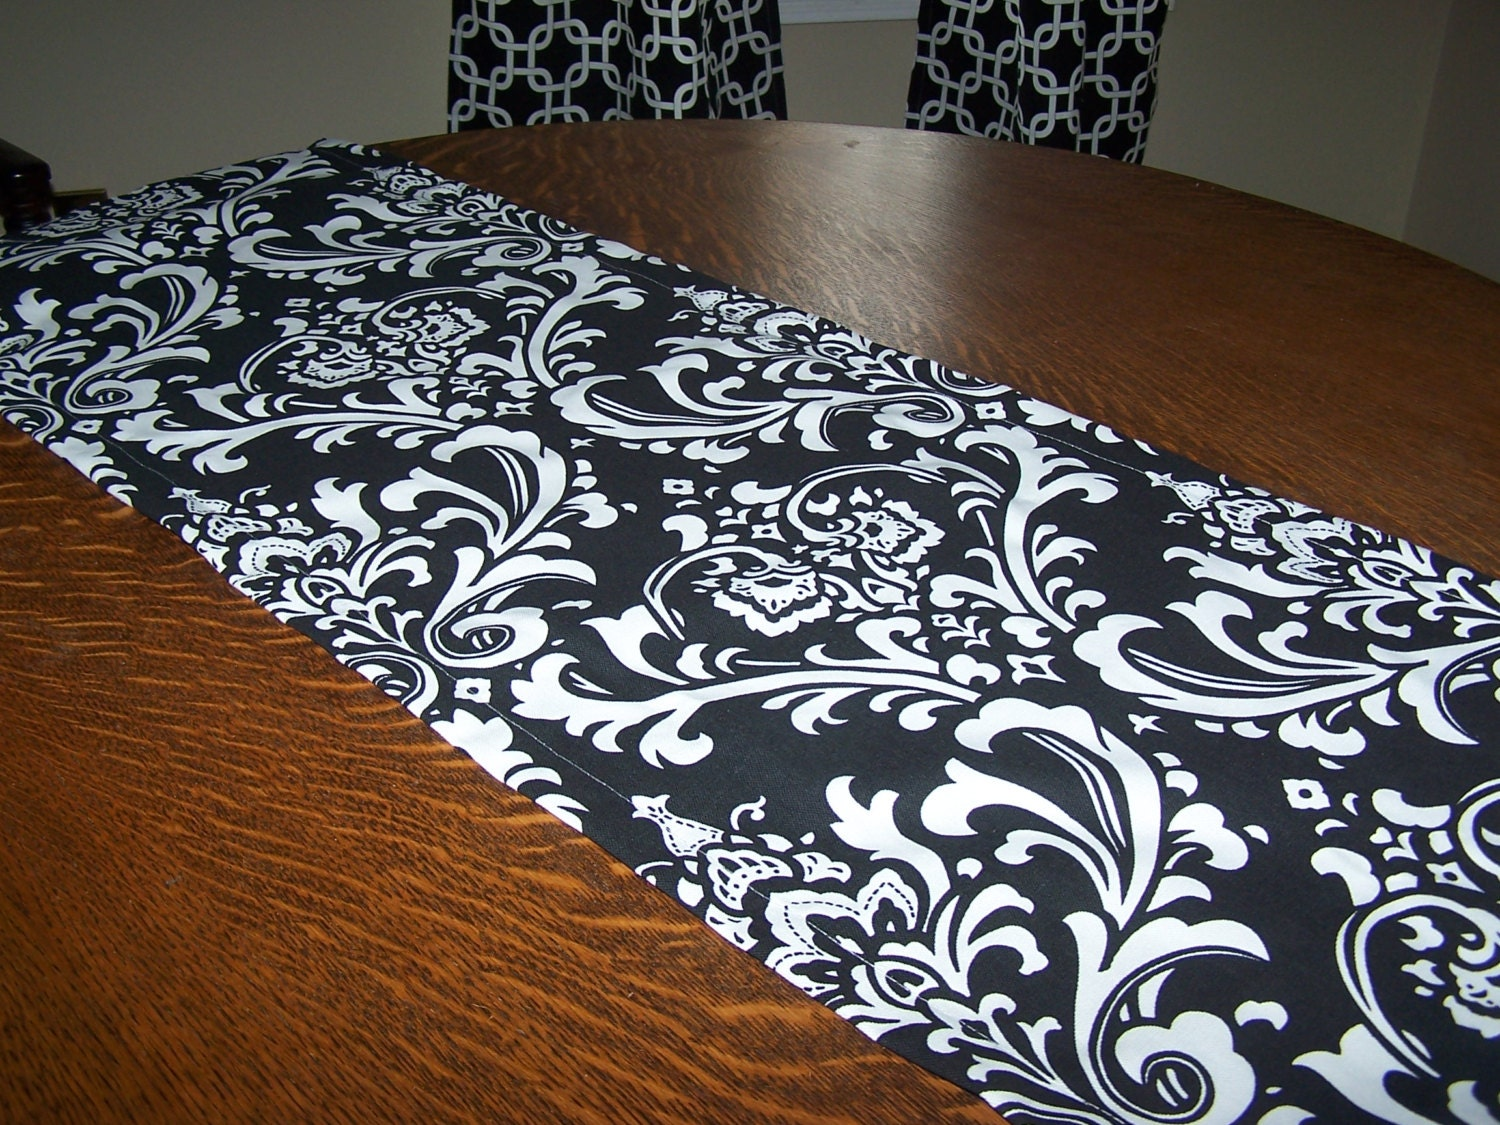 Parfair Dessin Satin Table Runners 12 x inch for Wedding Banquet Halloween Party Decoration, Bright Silk and Smooth Fabric Party Table Runner - Black.